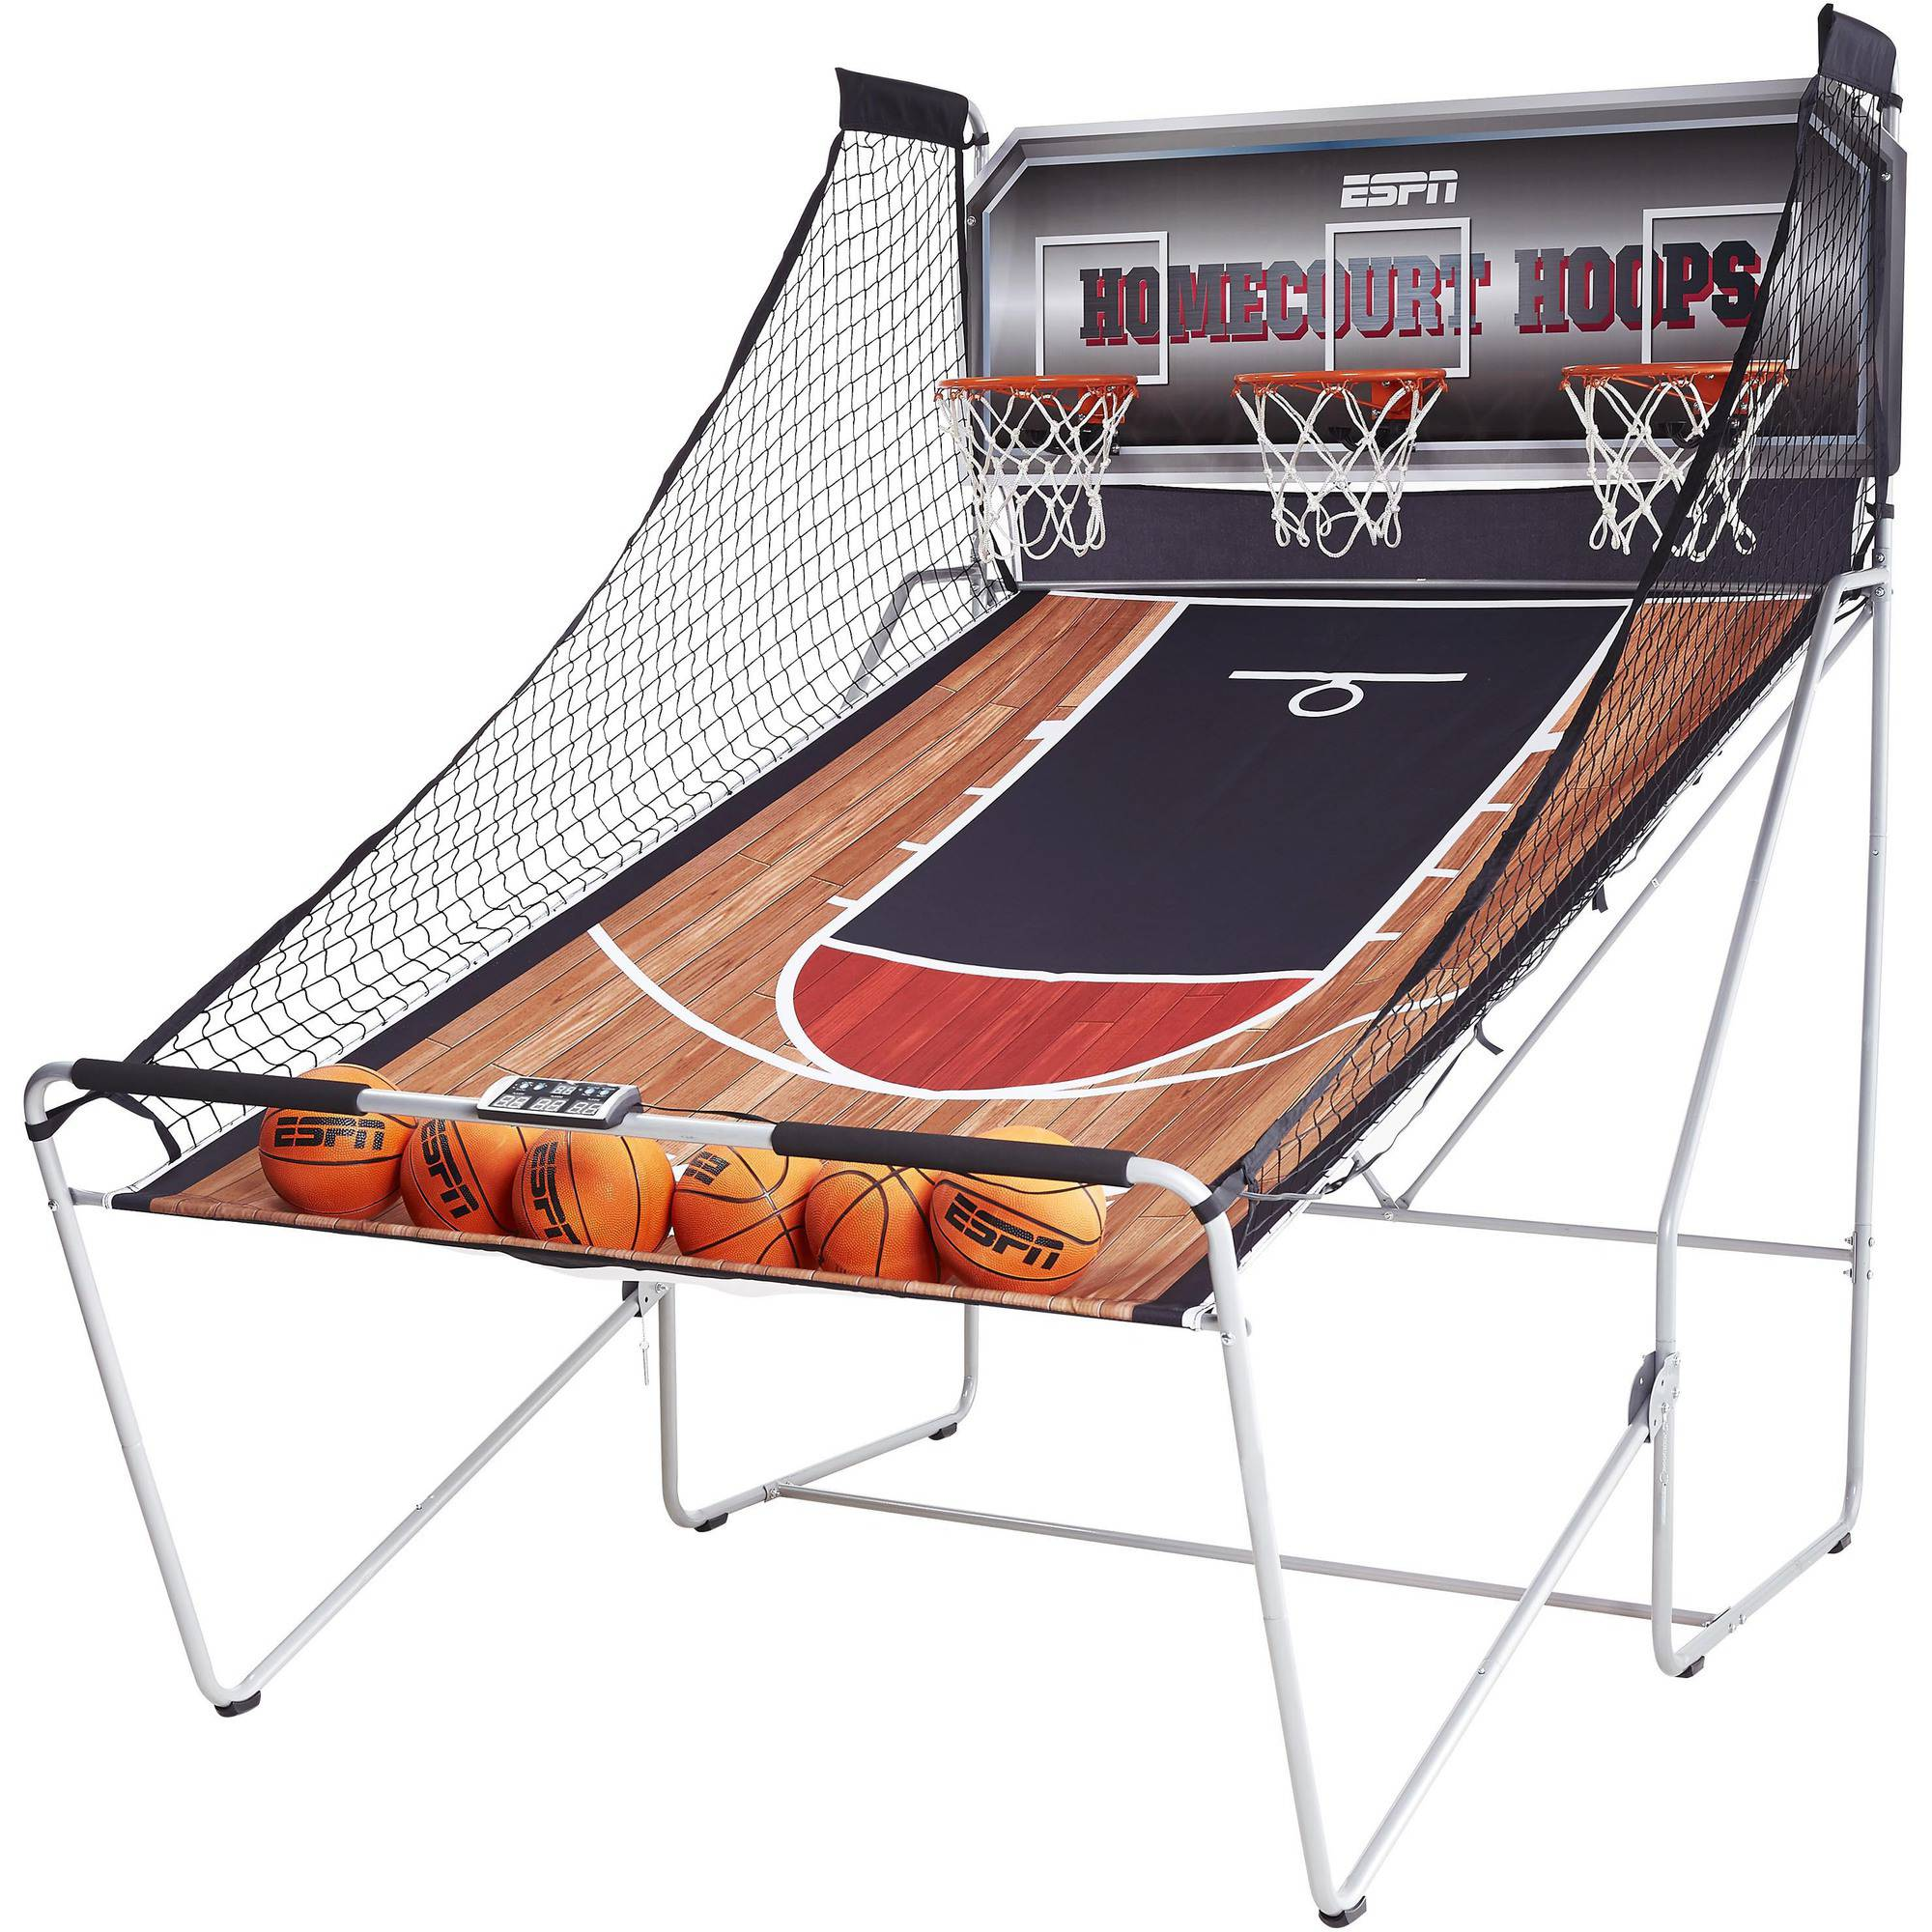 Basketball Coffee Mug With Hoop In Door Games And This Mini Foosball Table Easily Fits On A